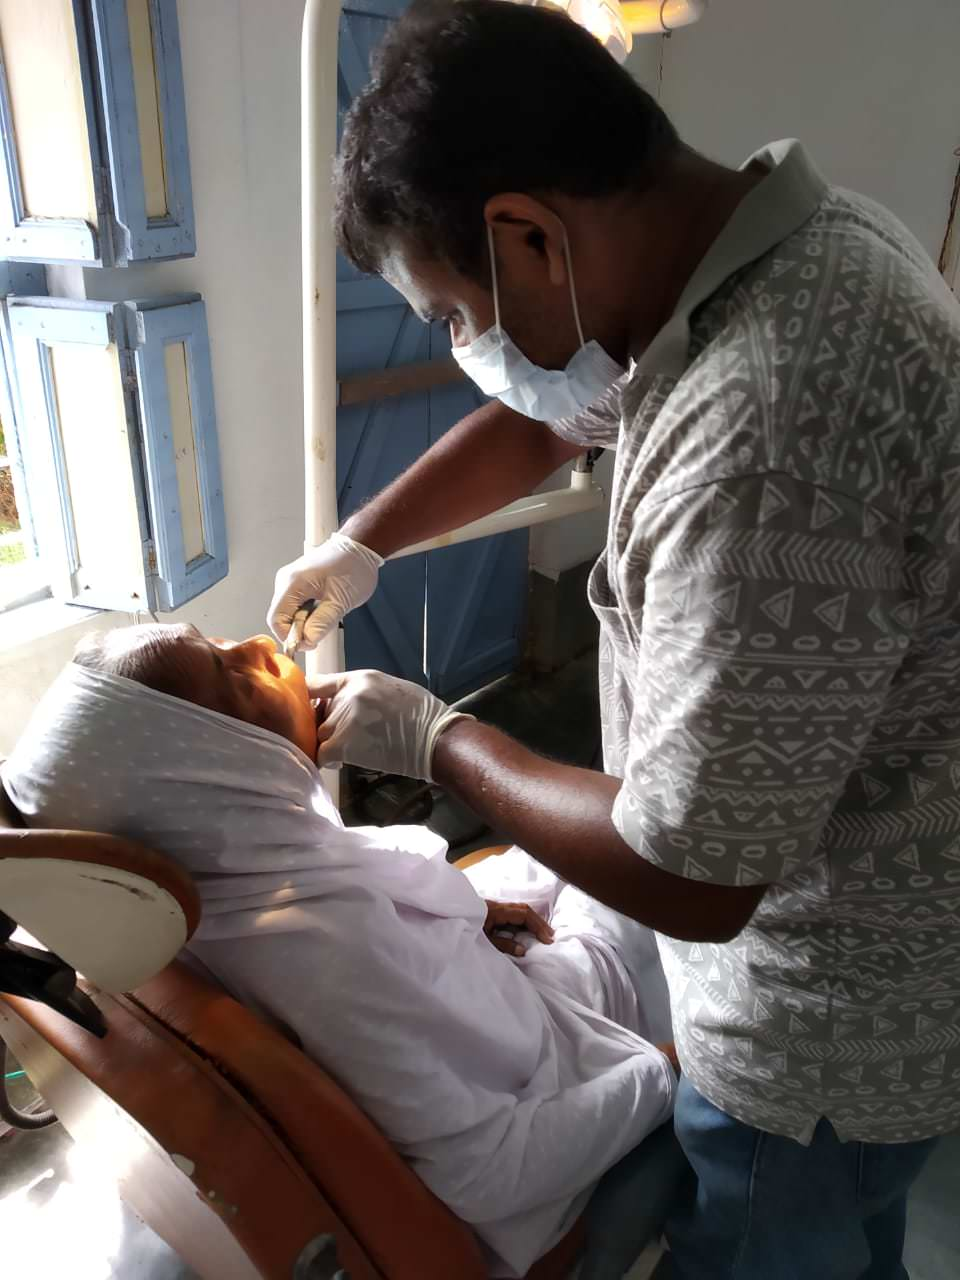 2019-11-11-patientatdentistrydepartment1-ruralhealthcarefoundationcarefoundation.jpeg